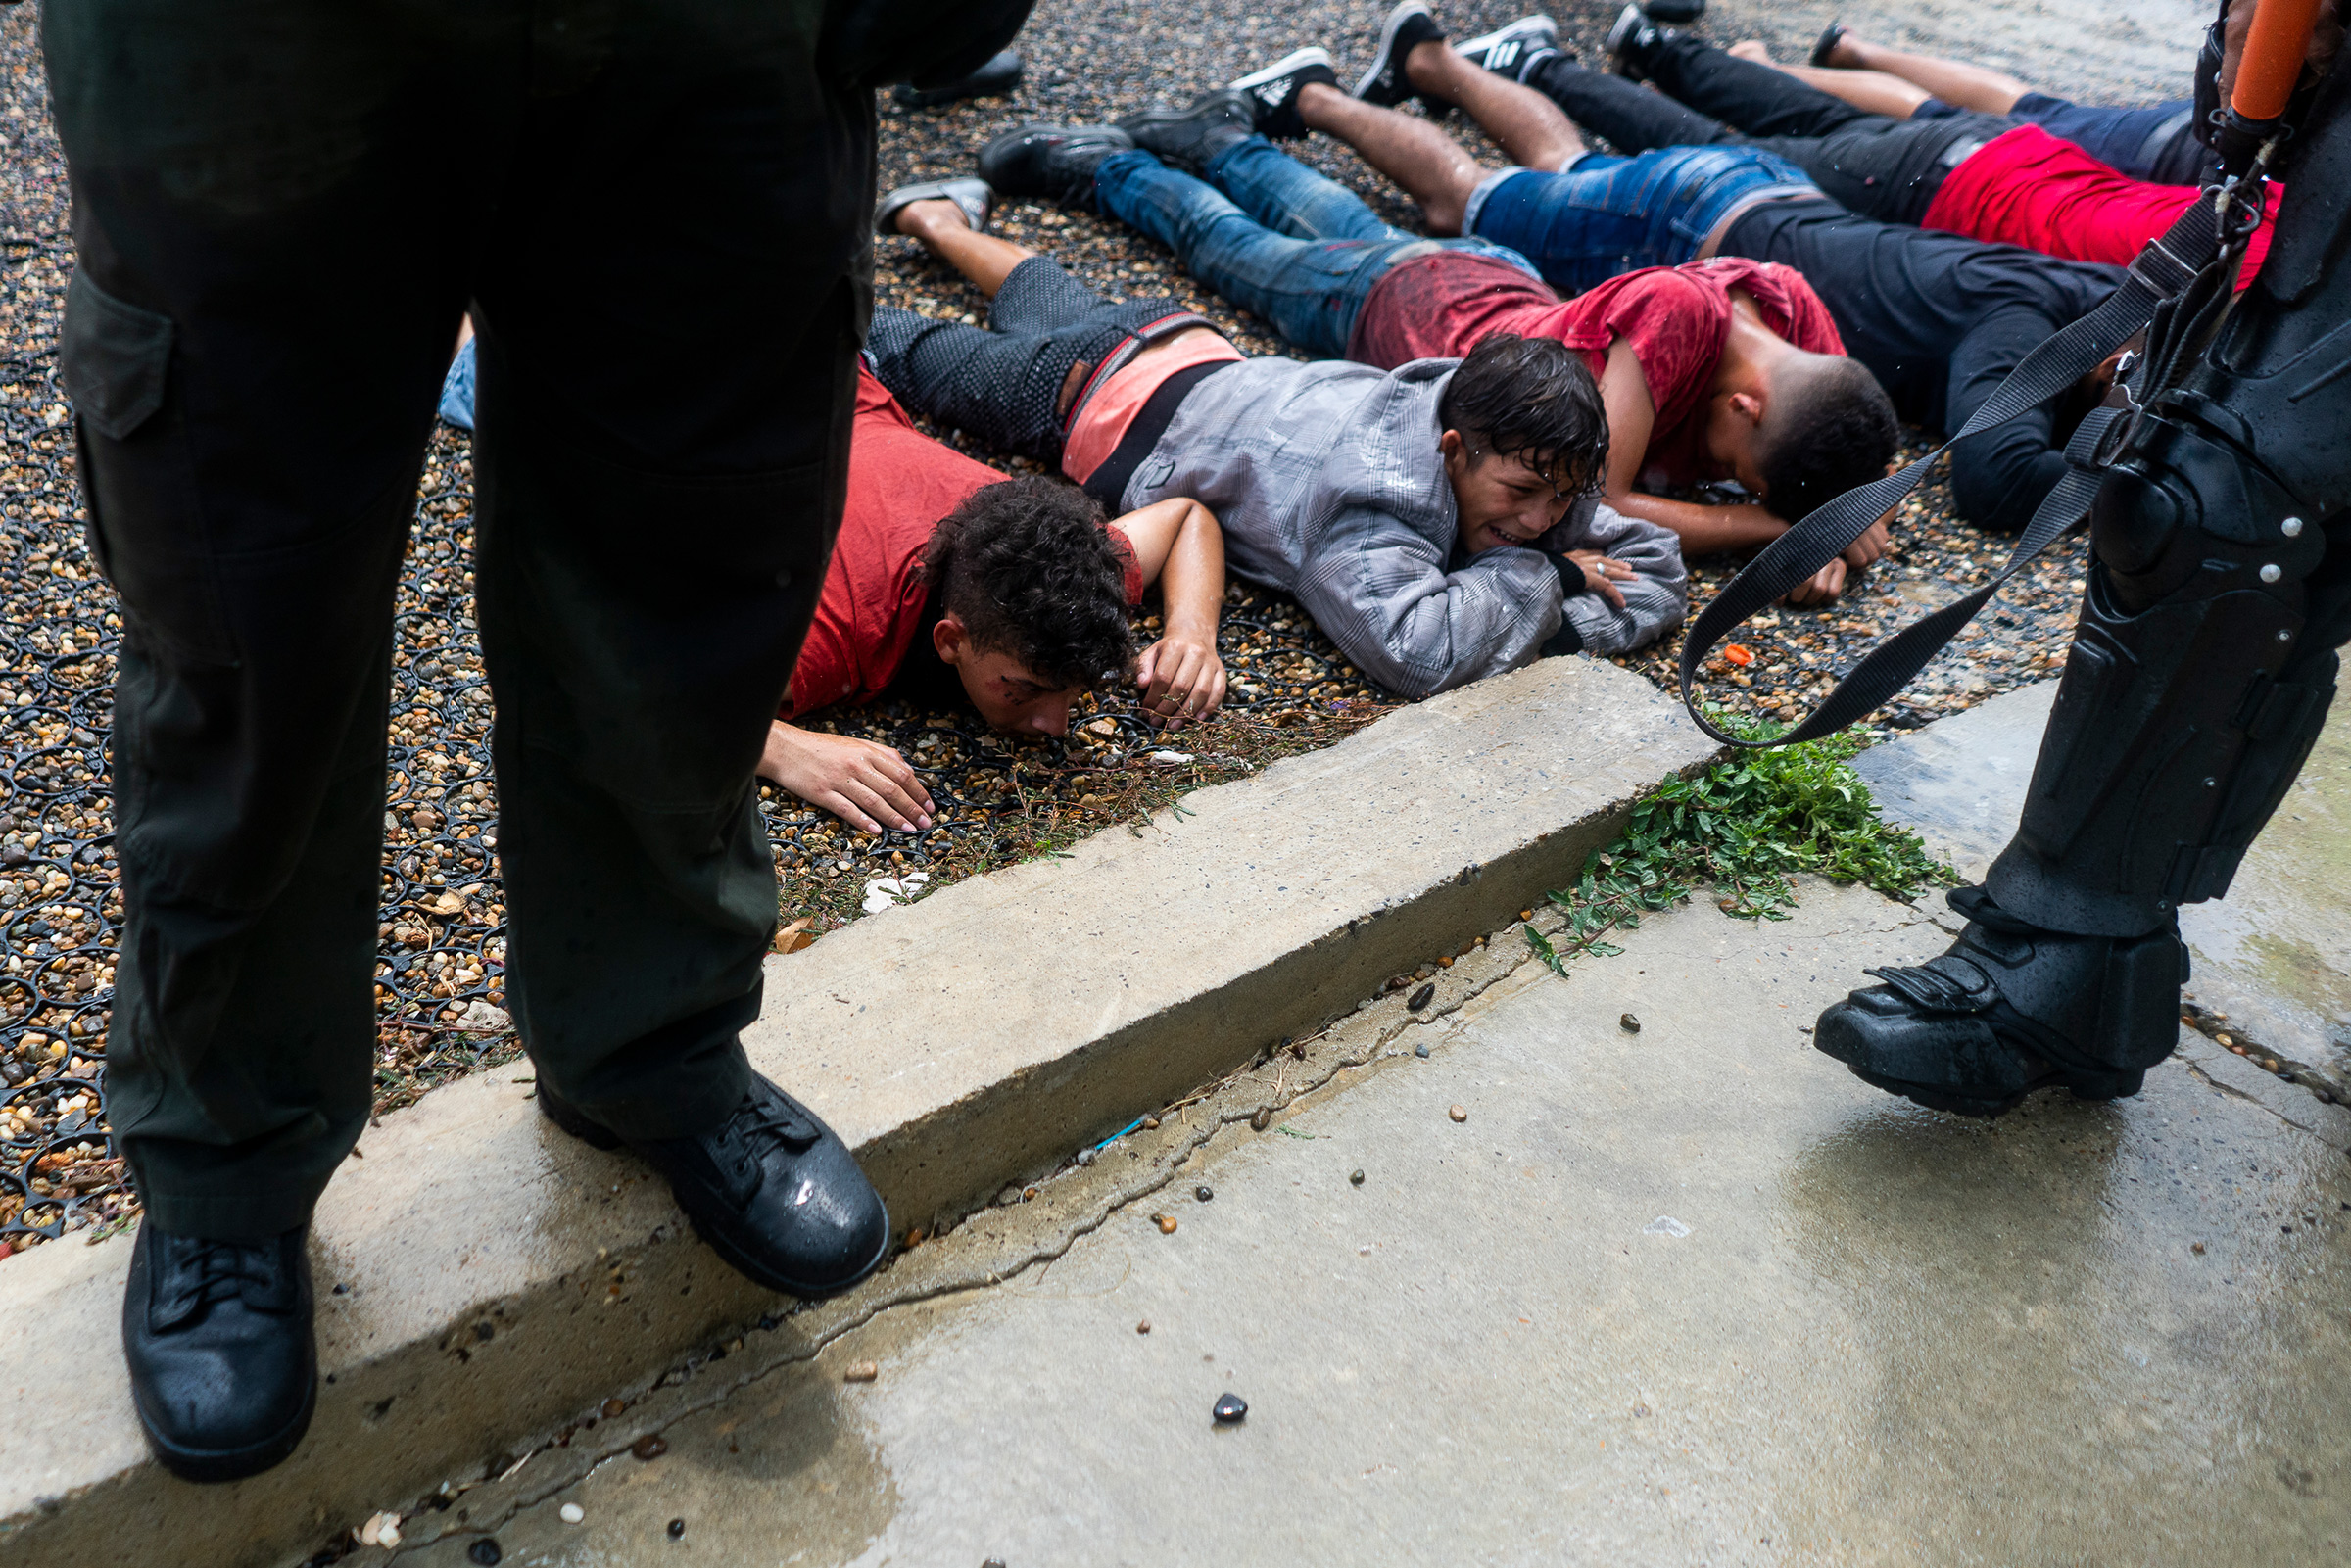 At the end of a demonstration, police make arrests, including some underage boys, in Barranquilla on May 3.